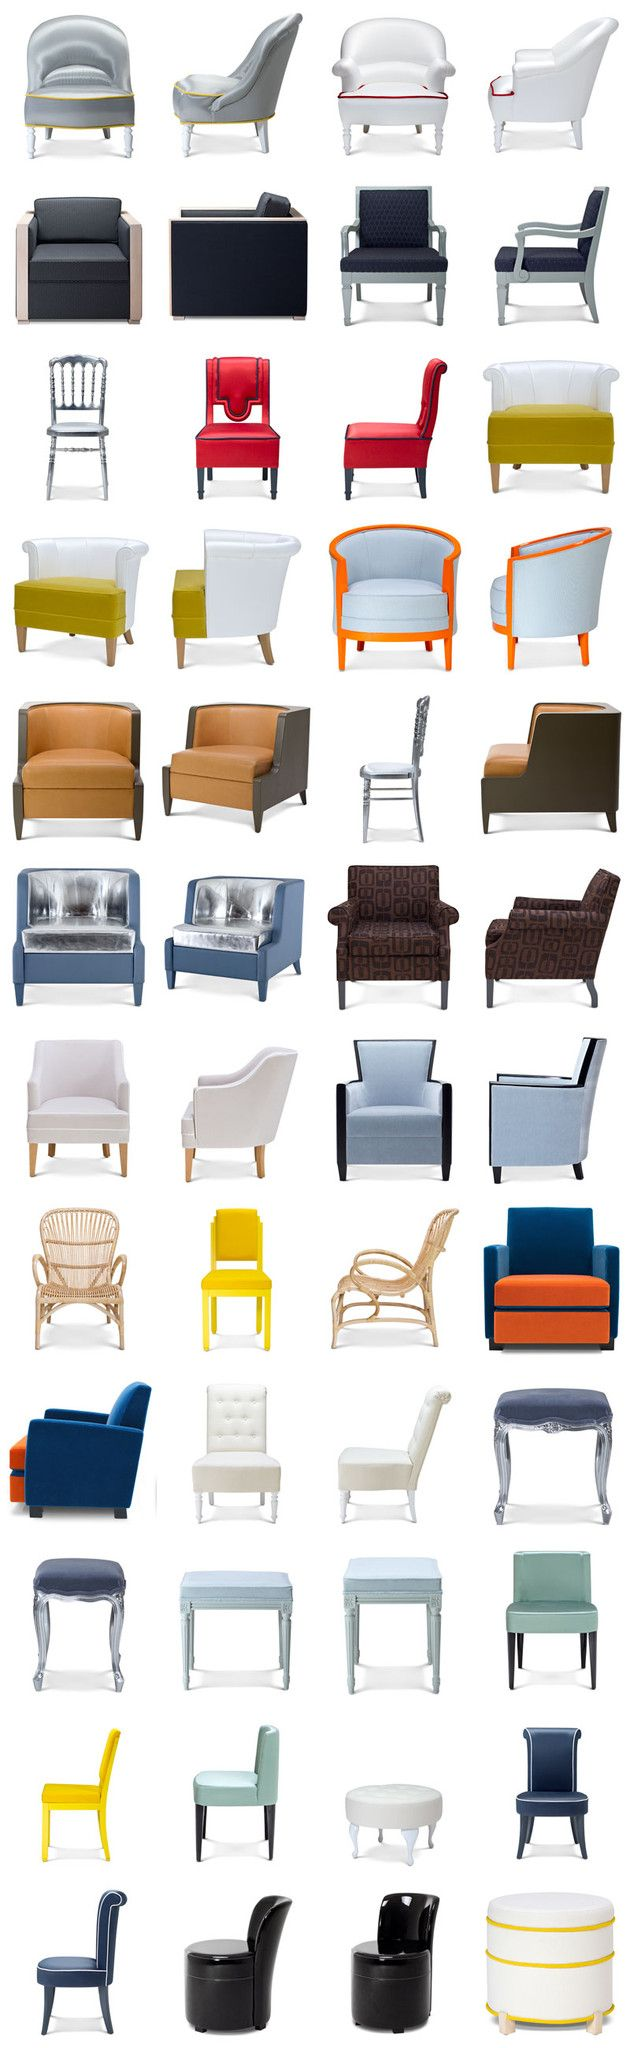 Photoshop Psd Sofa Blocks Best Collection Cad Design Free Cad